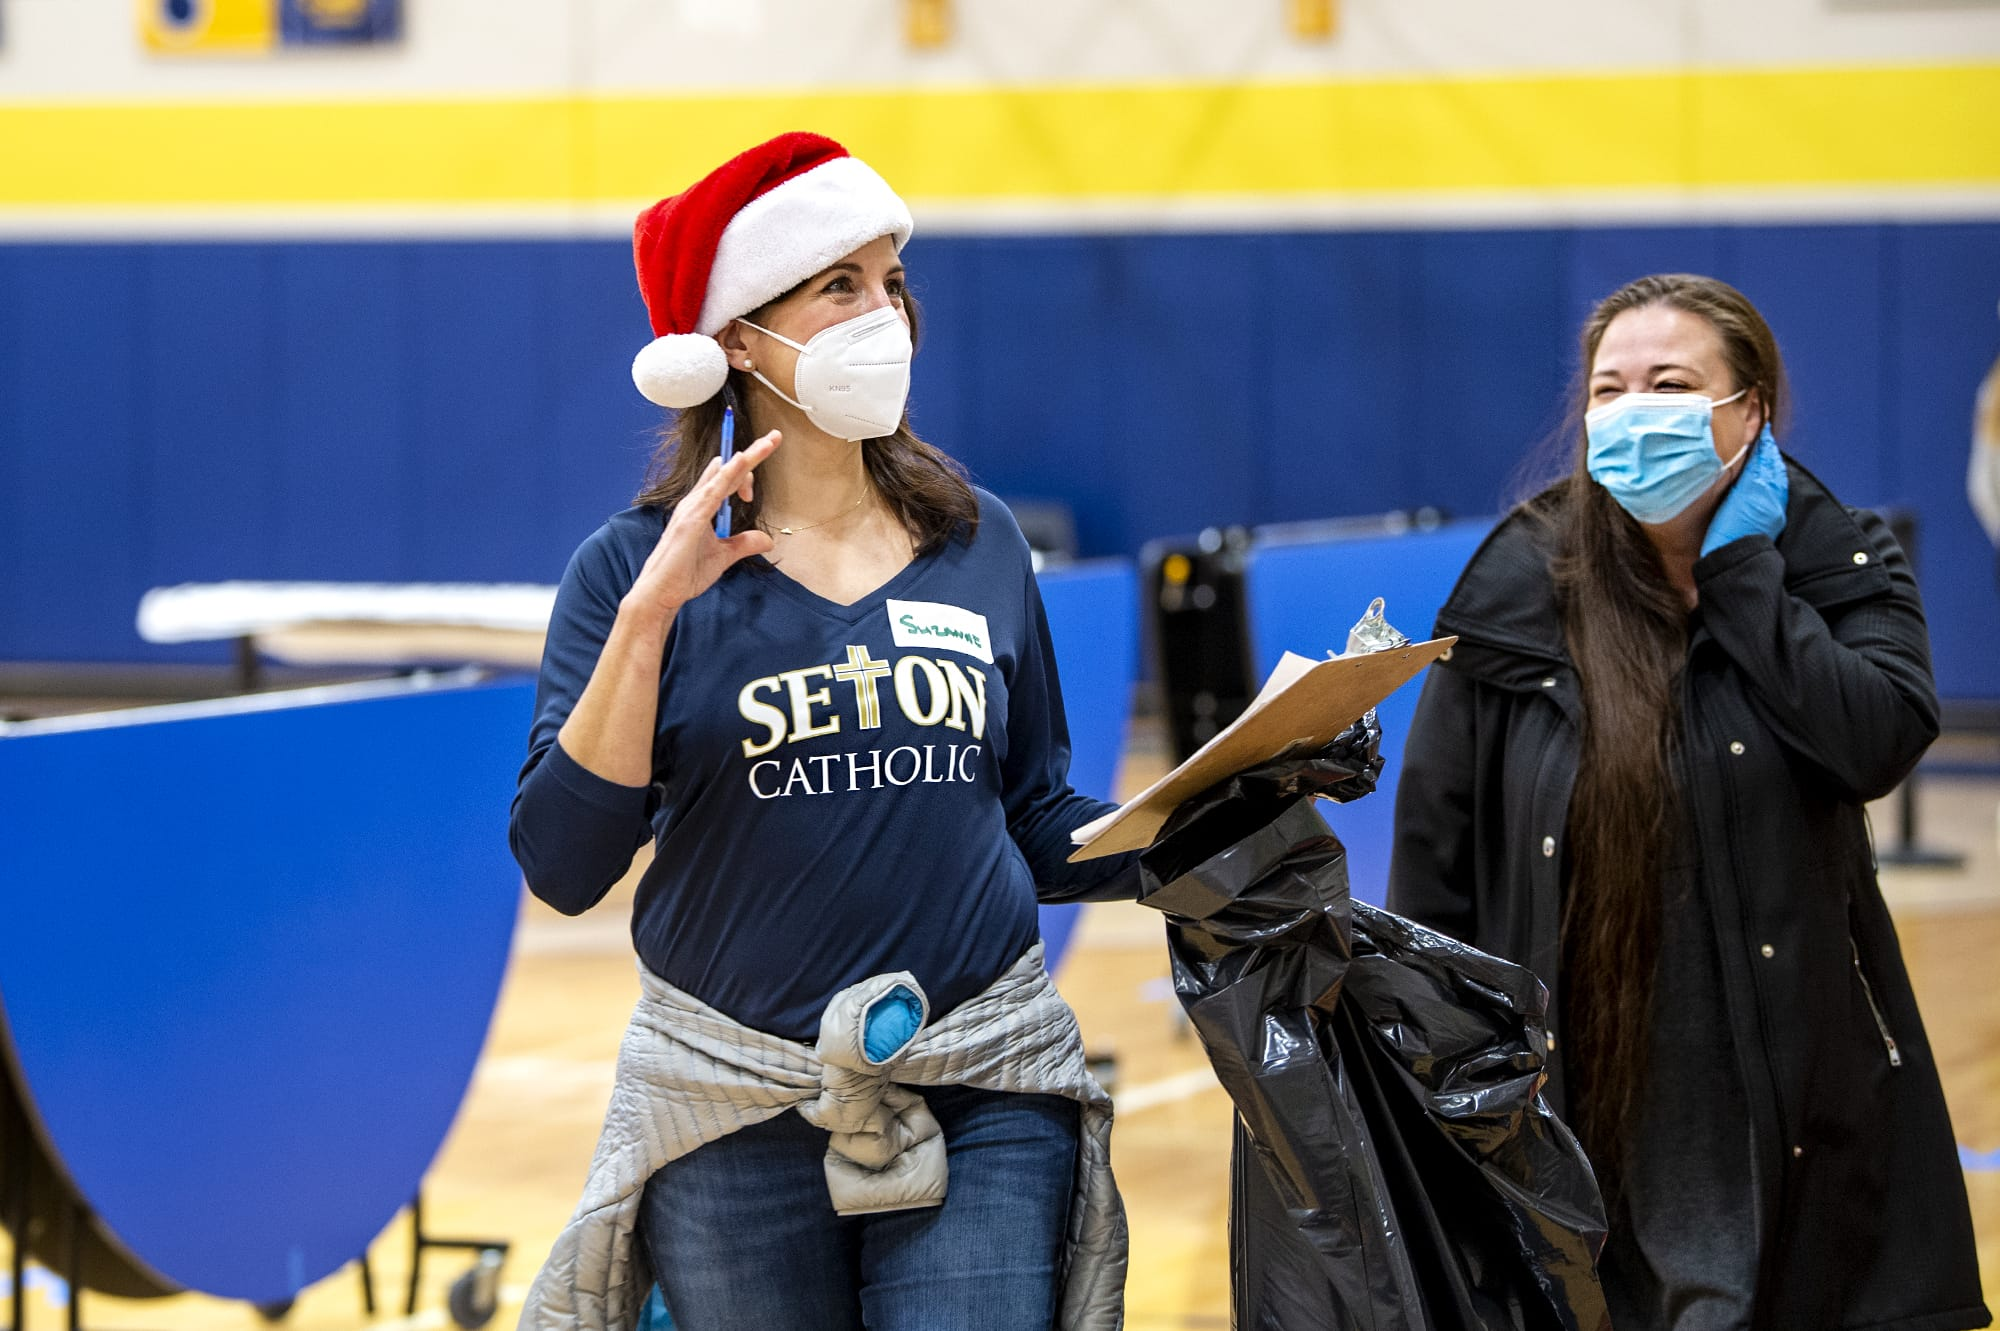 Parent volunteer Suzanne Gerhart, left, helps toy drive shopper Amy Buie on Saturday, December 19, 2020, at Seton Catholic Prep School. The toy drive was put on by St. Vincent De Paul, who used Seton Catholic's facilities and student and parent volunteers to serve the community. Guests were sheparded through the gymnasium and cafeteria to pick out toys, clothing, books, wrapping paper and enter raffles for a bike and a Christmas tree.